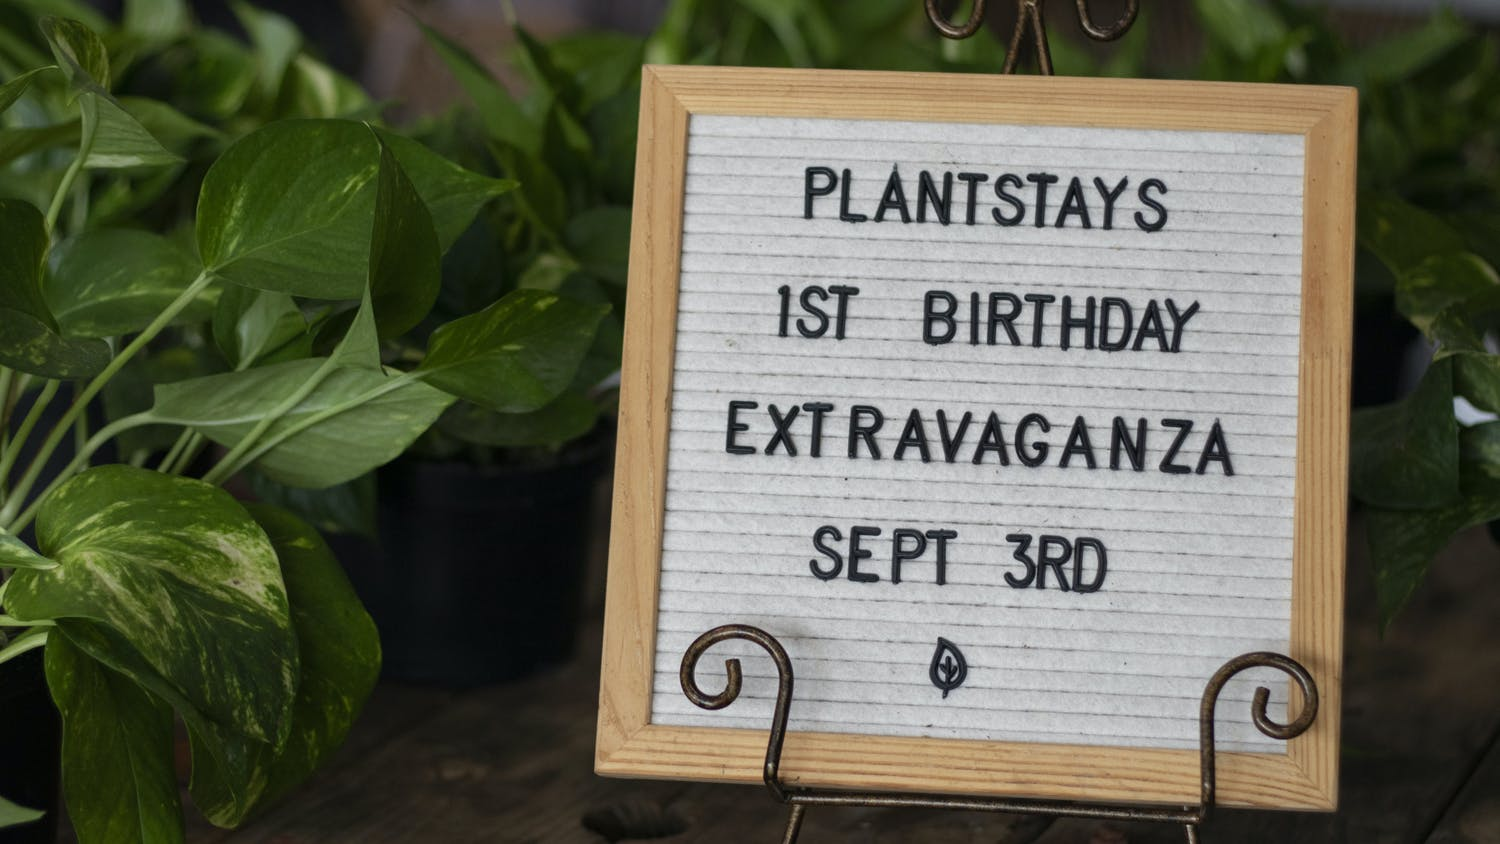 Plantstay, a local plant shop, is having its one-year anniversary on Friday, Sept. 3, 2021. To celebrate, the director and owner, Bren Strickland, will give away two gift cards and 100 gift bags.